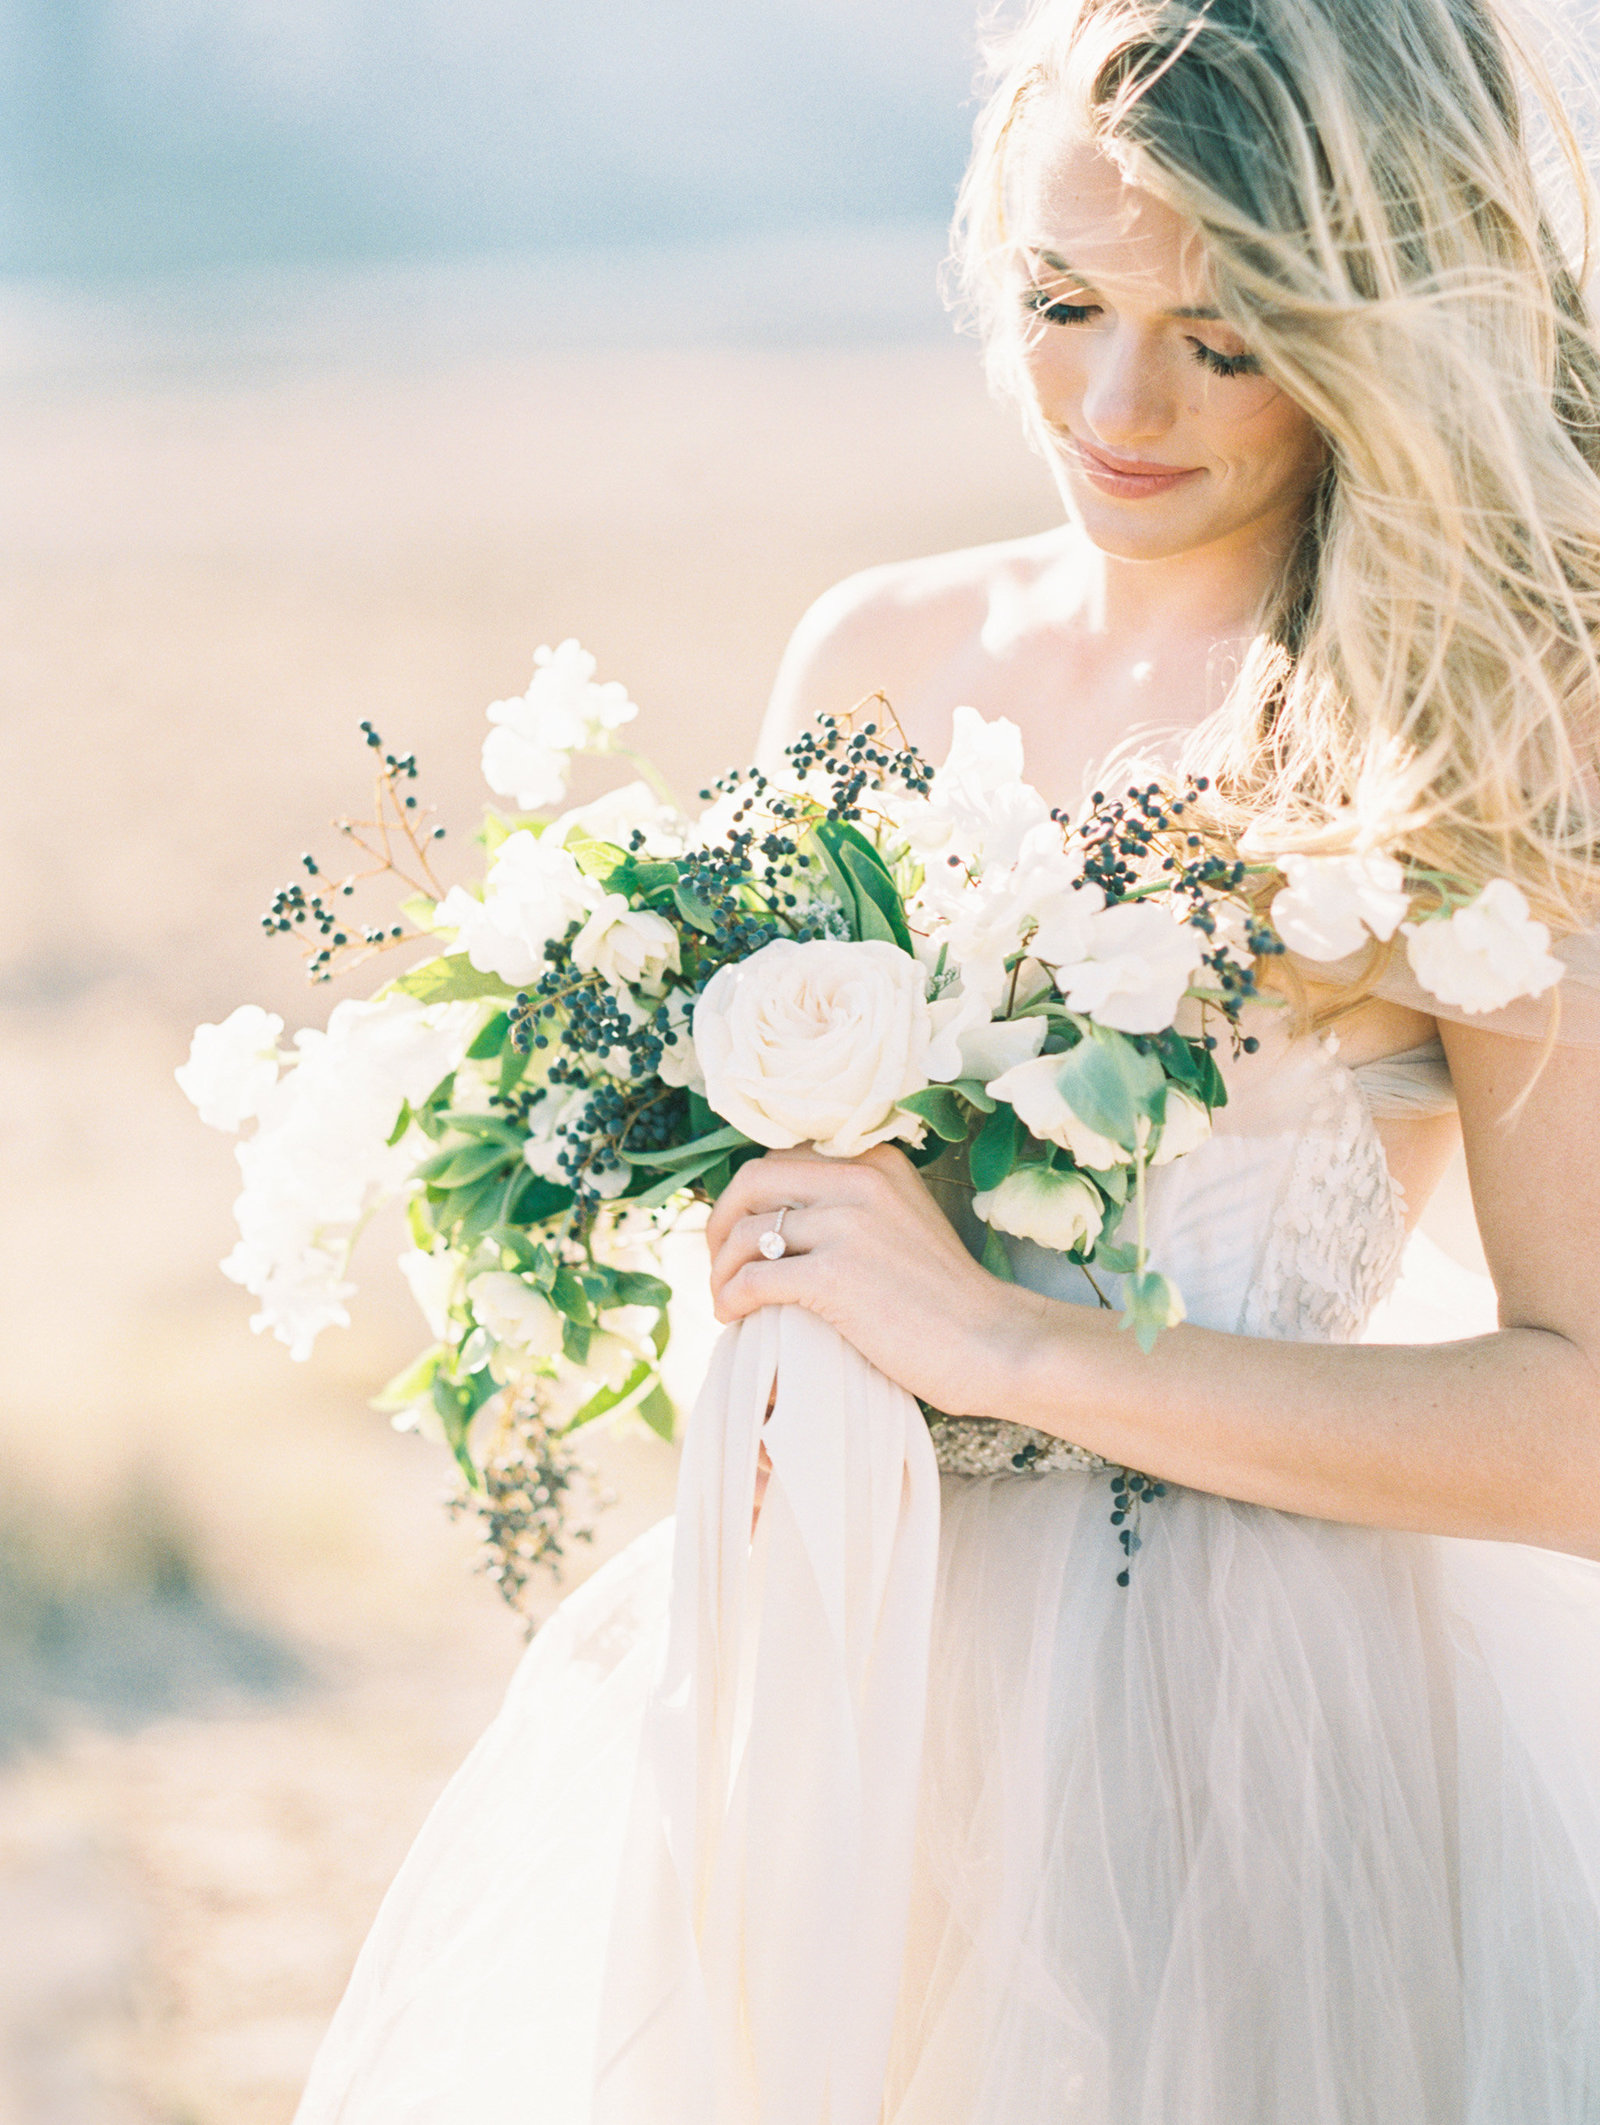 Mandy-Ford-Photography-Las-Vegas-Wedding-Editorial-50